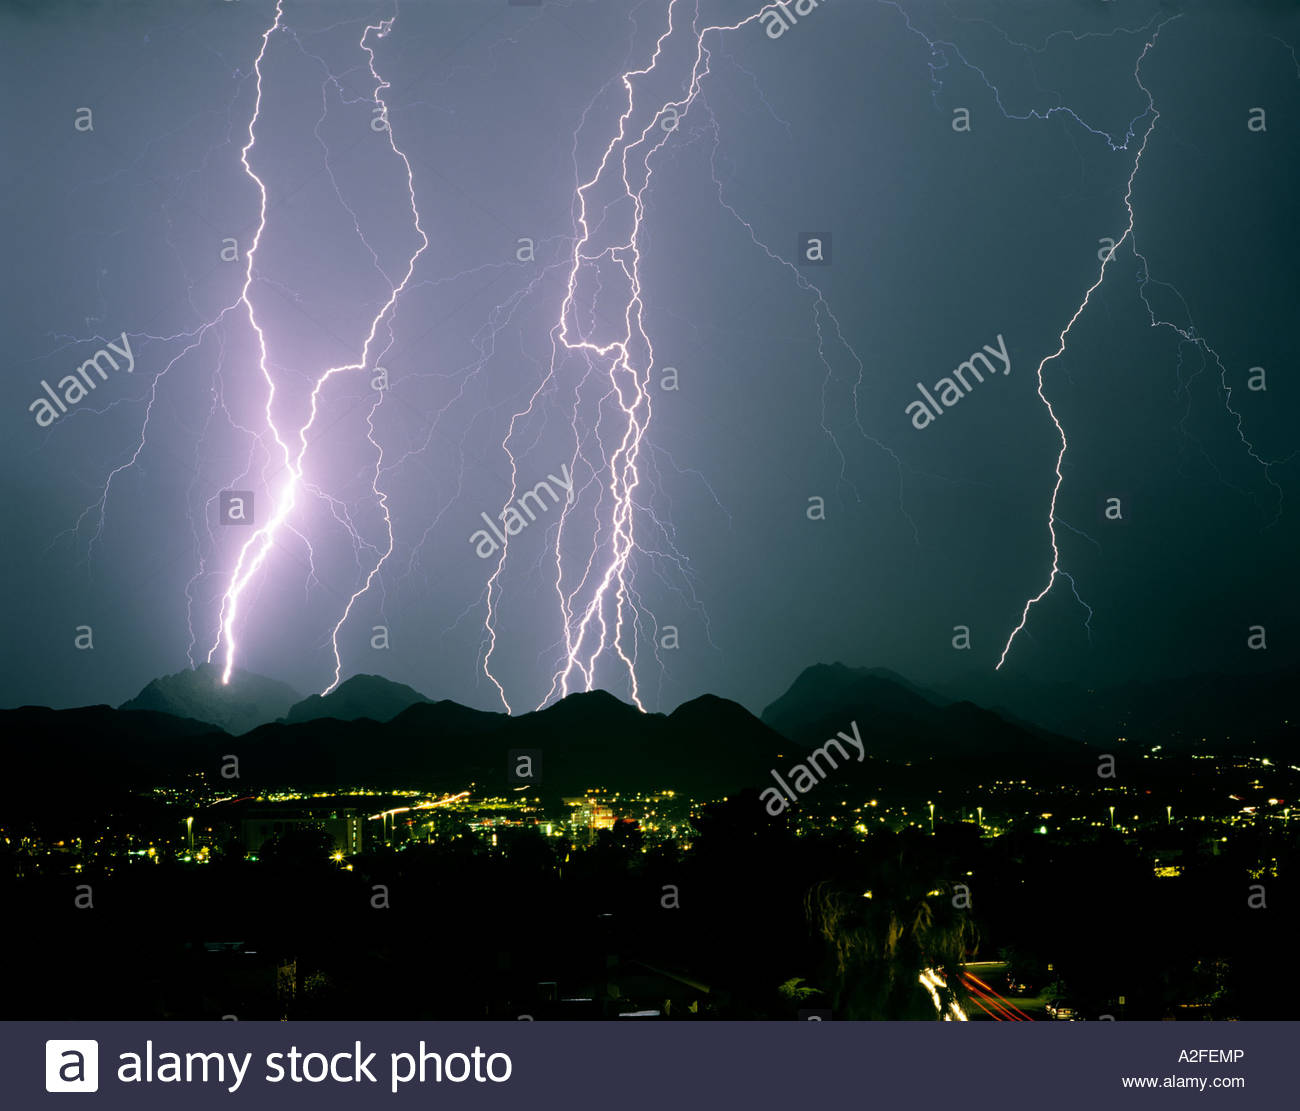 Tucson Mountains During Monsoon Thunderstorm With Lighting Bolts.